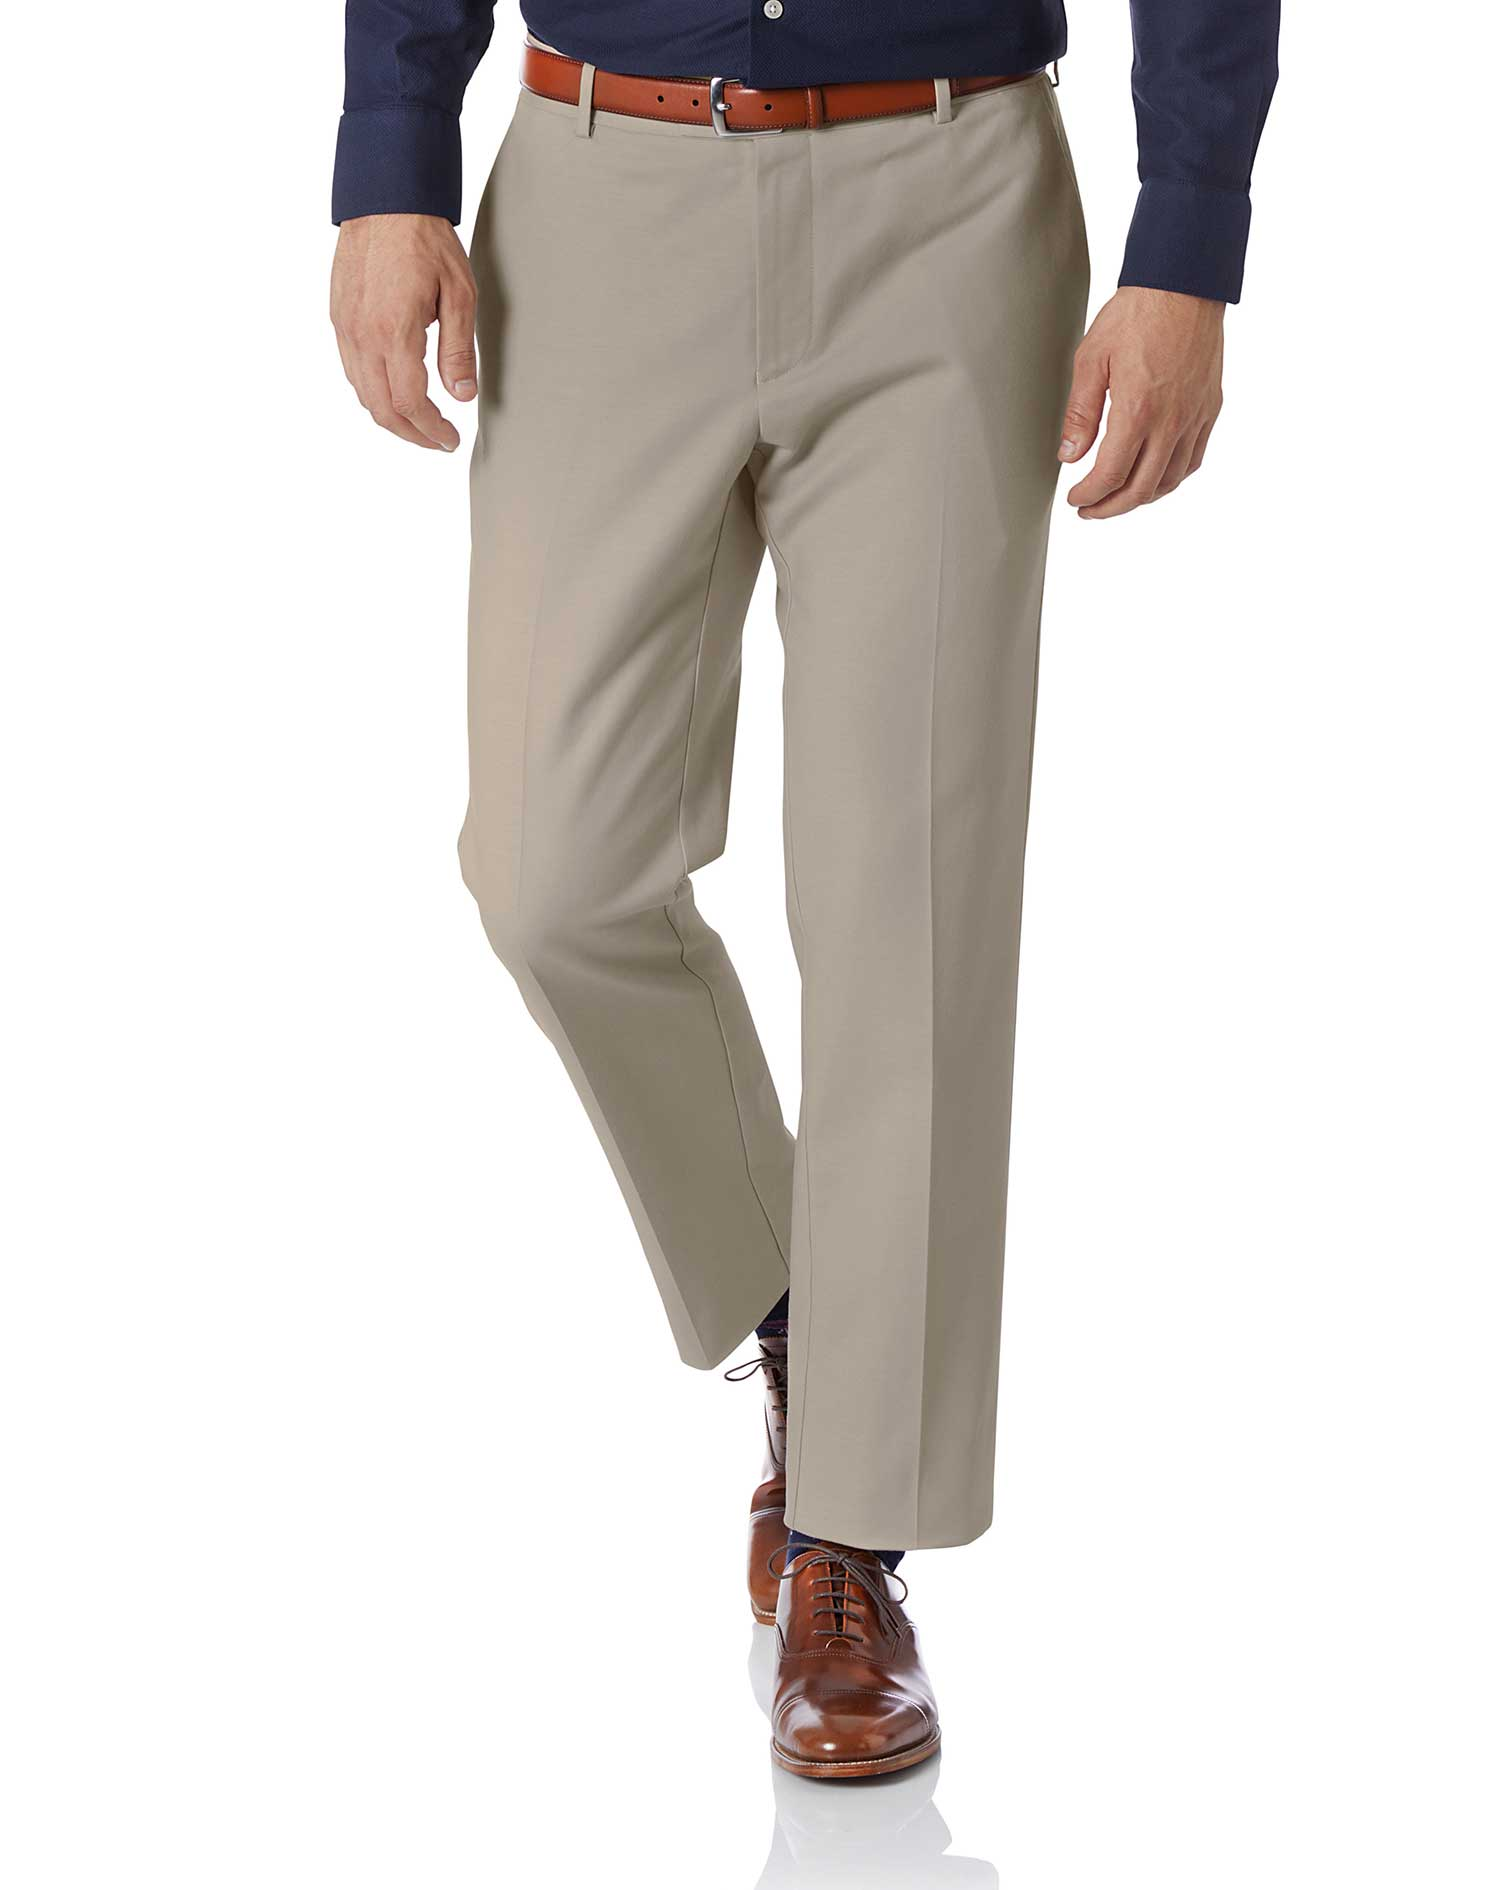 Stone Slim Fit Natural Performance Trouser Size W40 L34 by Charles Tyrwhitt